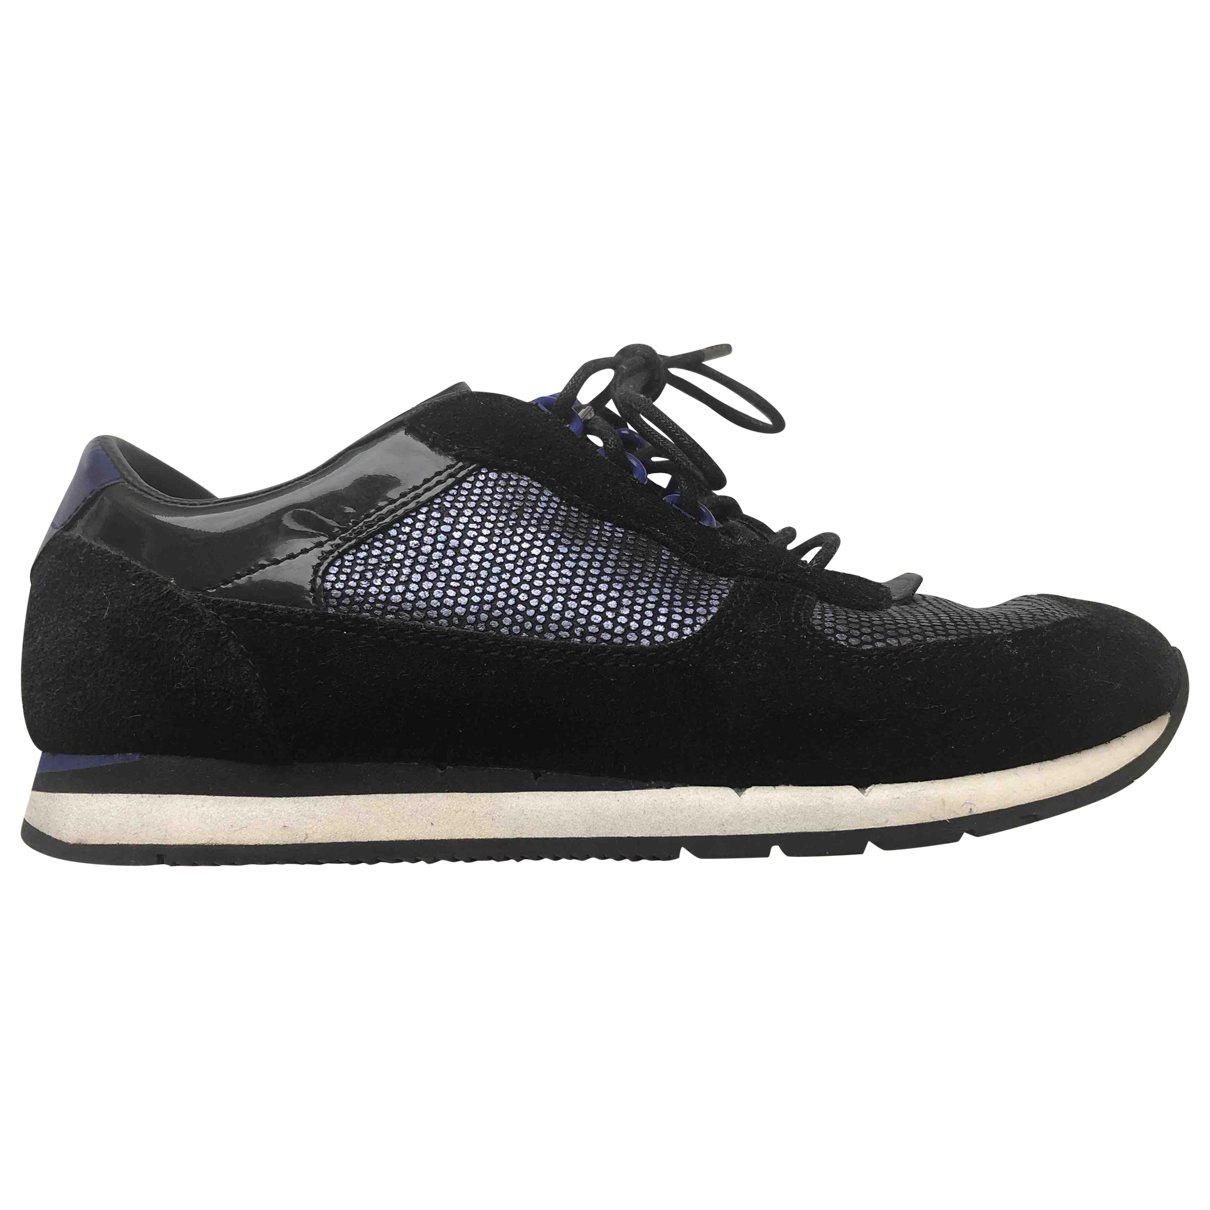 Paul Smith \N Black Leather Trainers for Women 36 EU